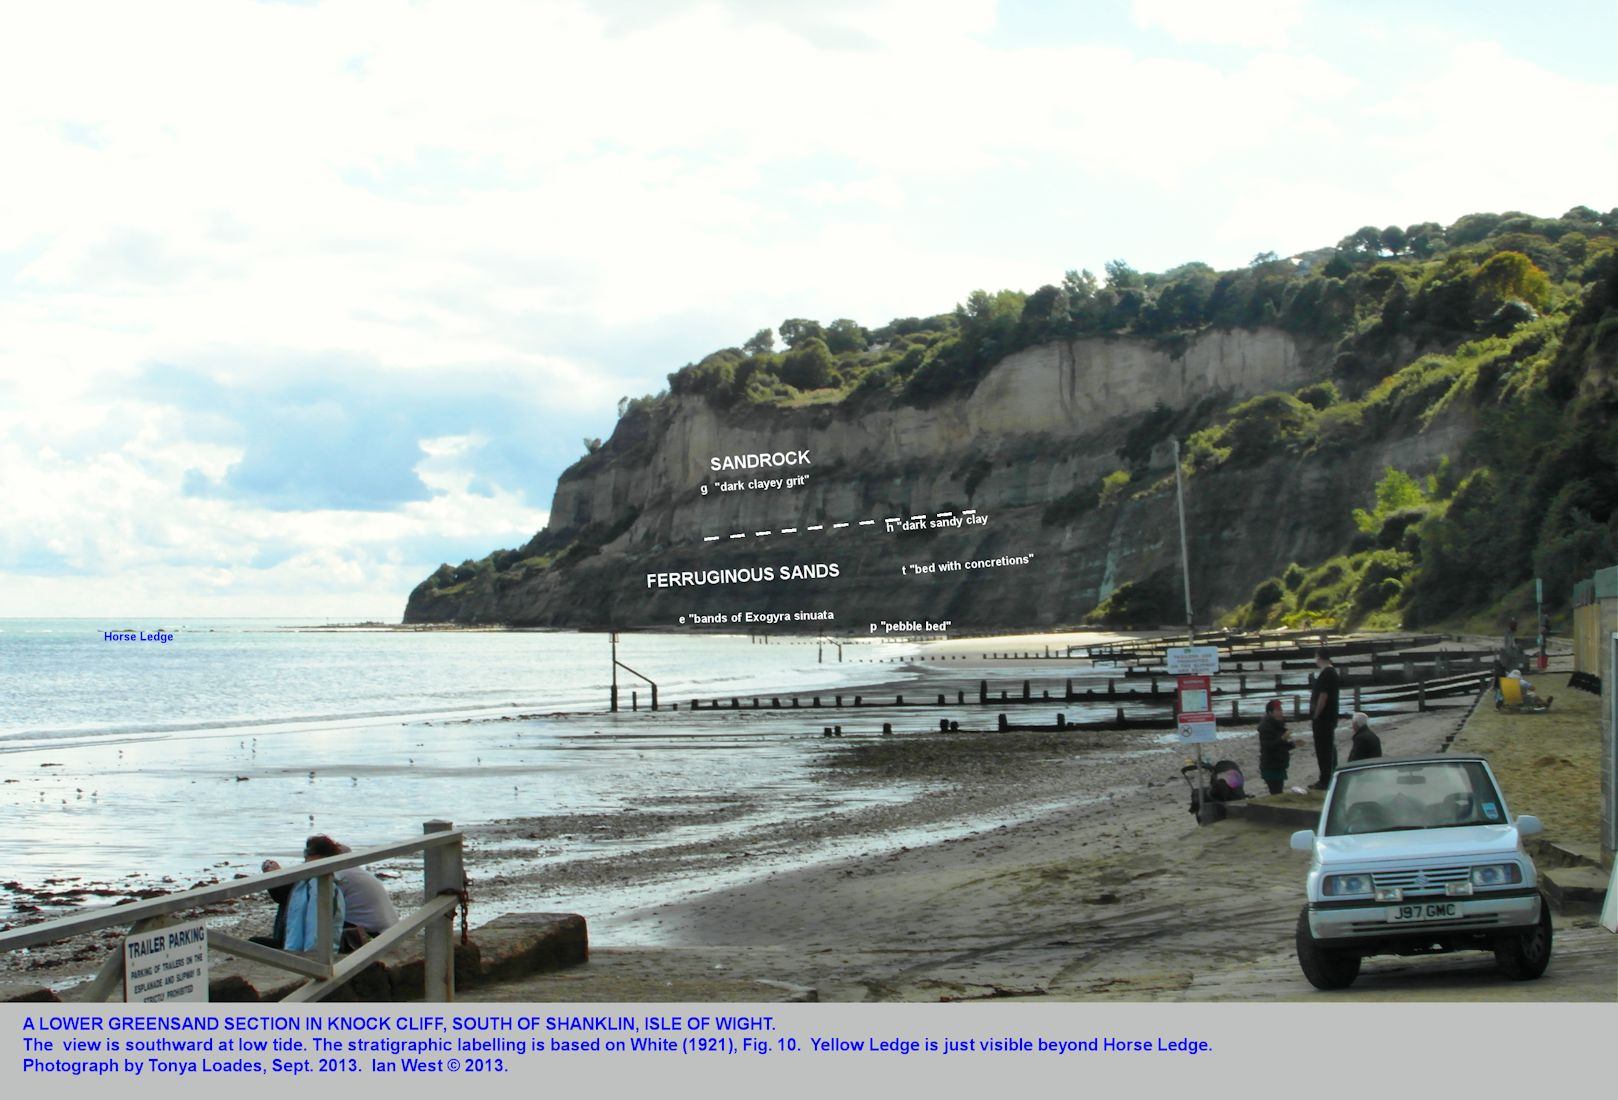 Knock Cliff, Shanklin, Isle of Wight, with Ferruginous Sands and Sand-rock of the Lower Greensand, September 2013